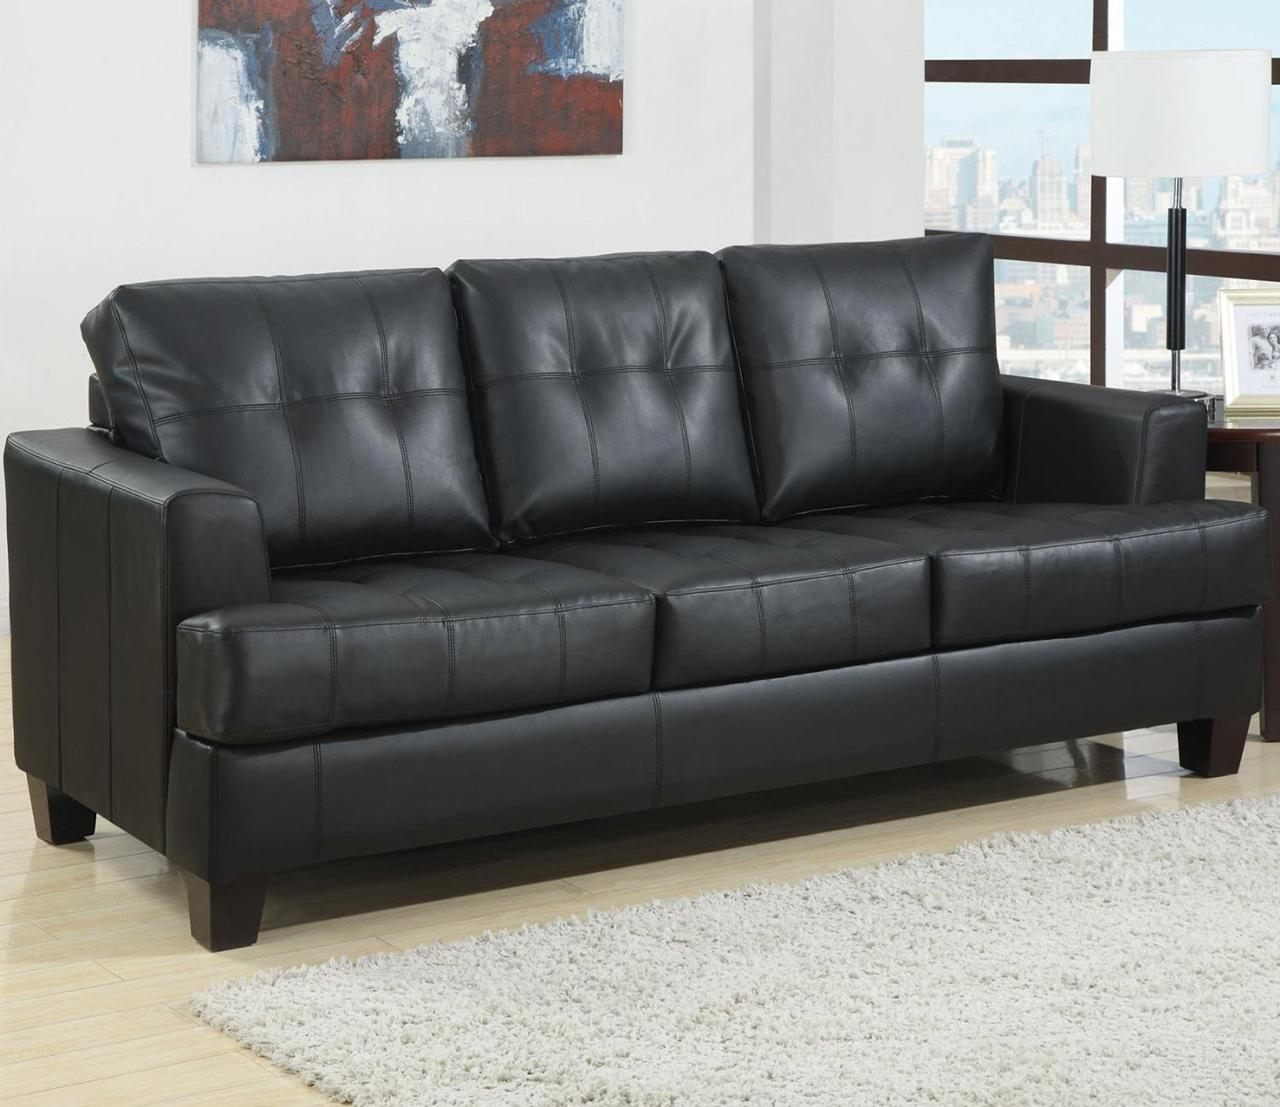 25 Best Sleeper Sofa Beds To Buy In 2017 Regarding Black Leather Convertible Sofas (View 4 of 20)